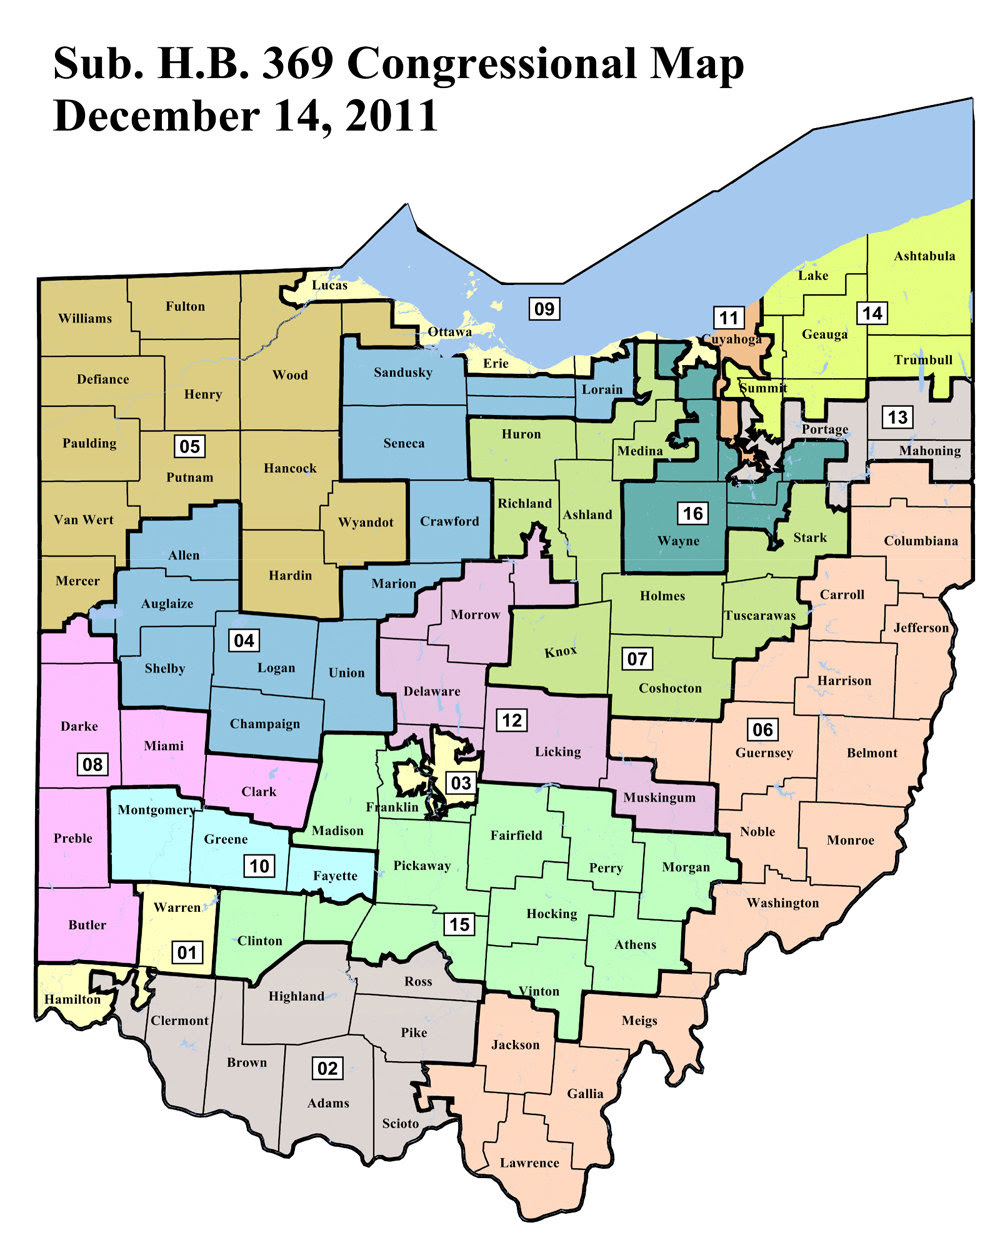 Us House Of Representatives District Map Ohio - Us-house-of-representatives-map-by-state